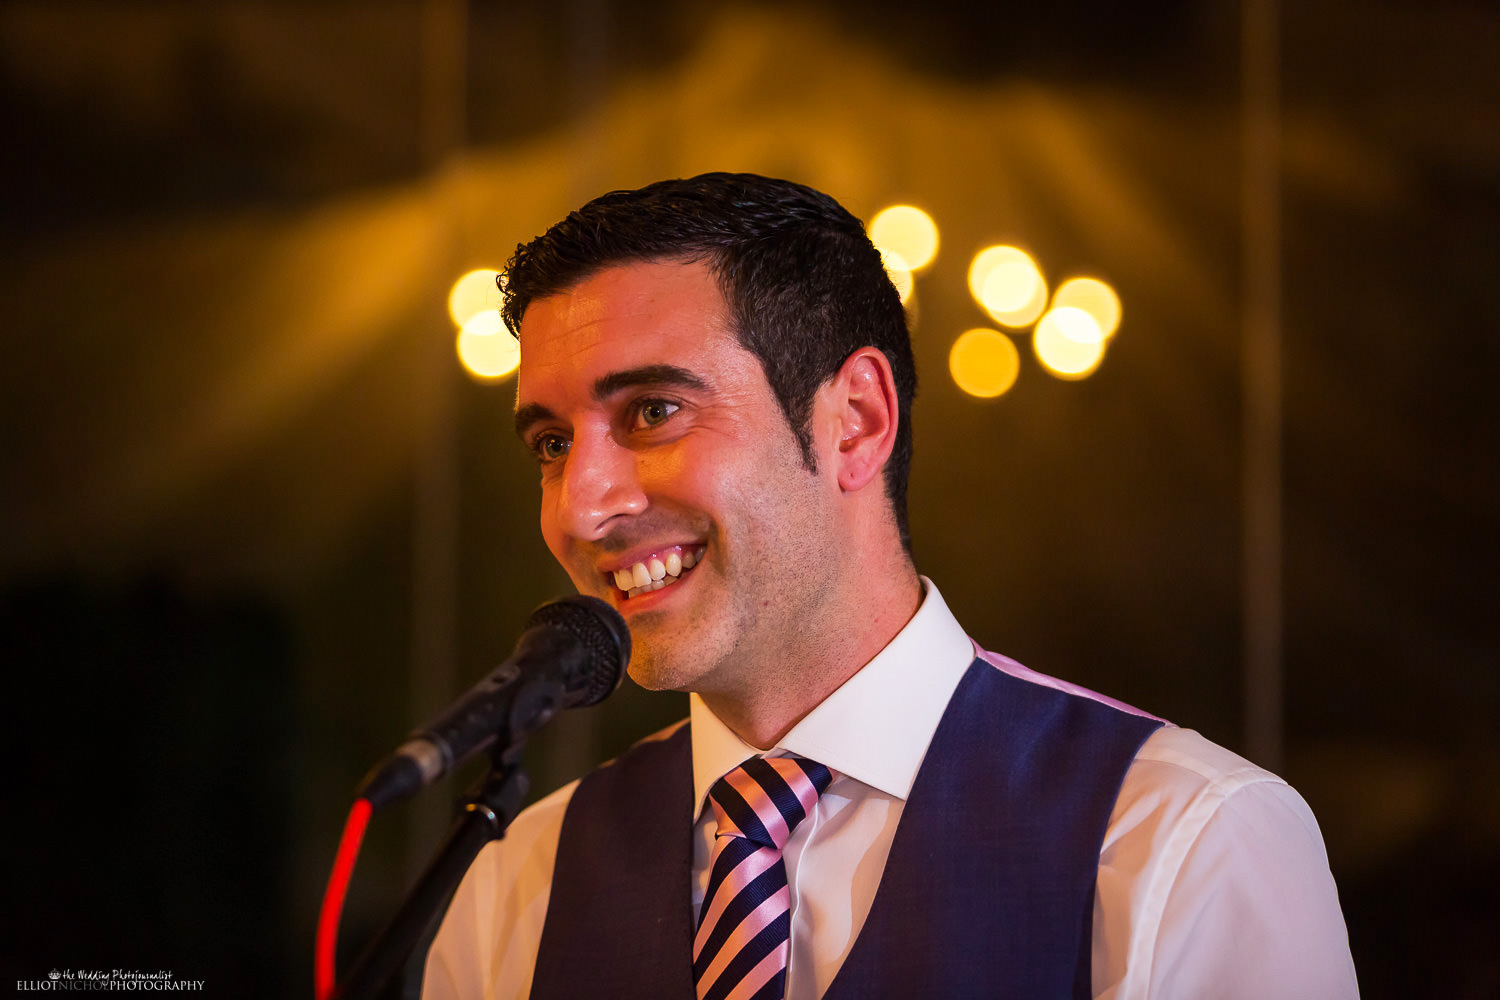 Groom smiling while performing his wedding speech